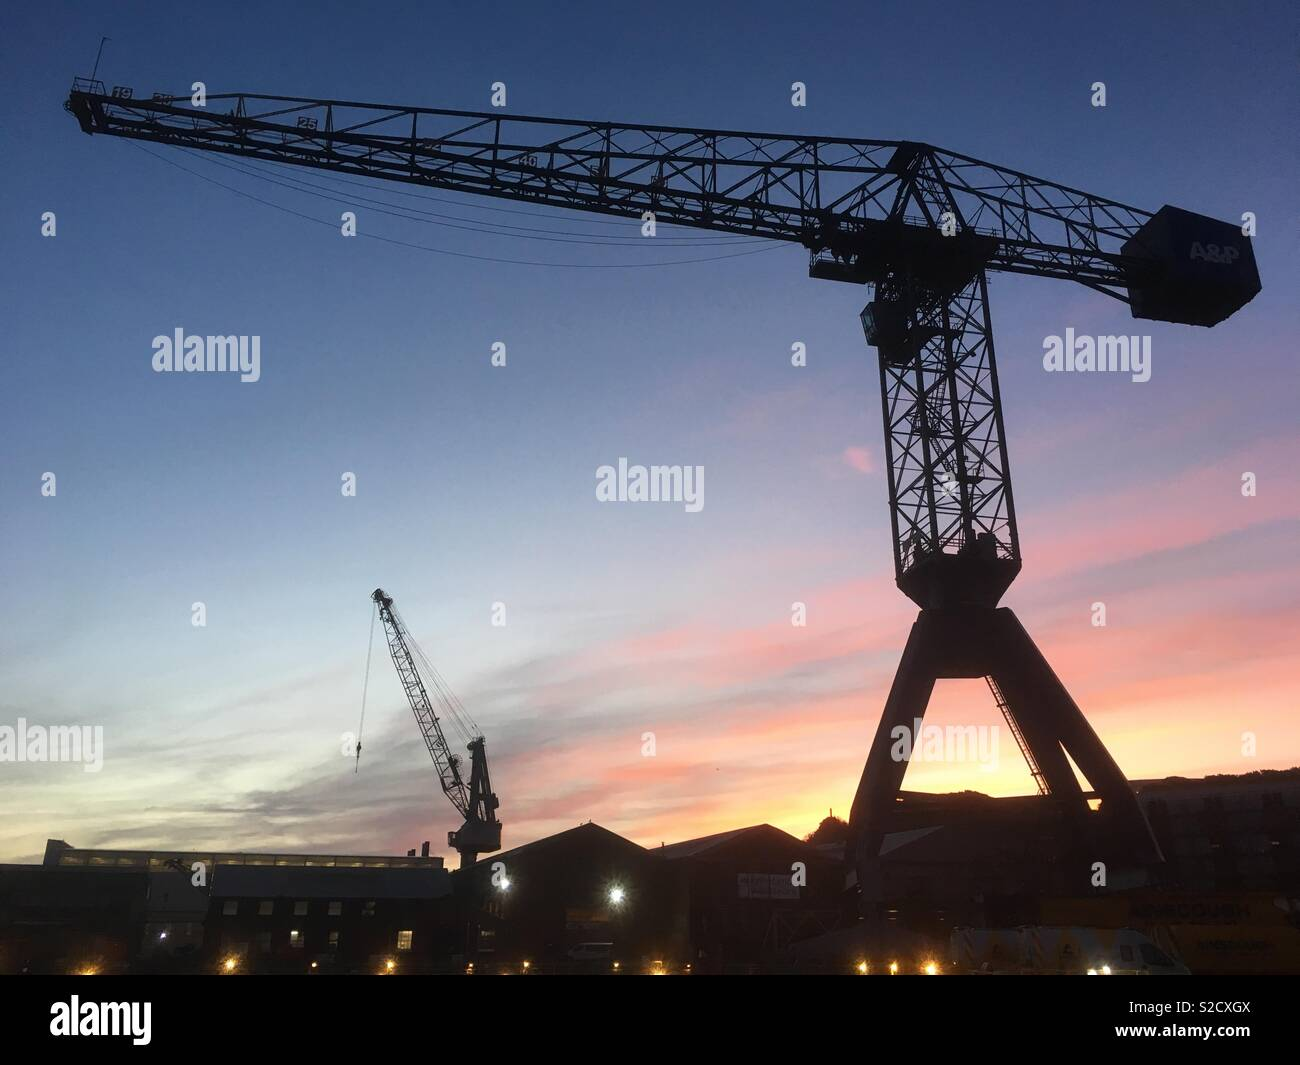 Cranes waking up for work. - Stock Image